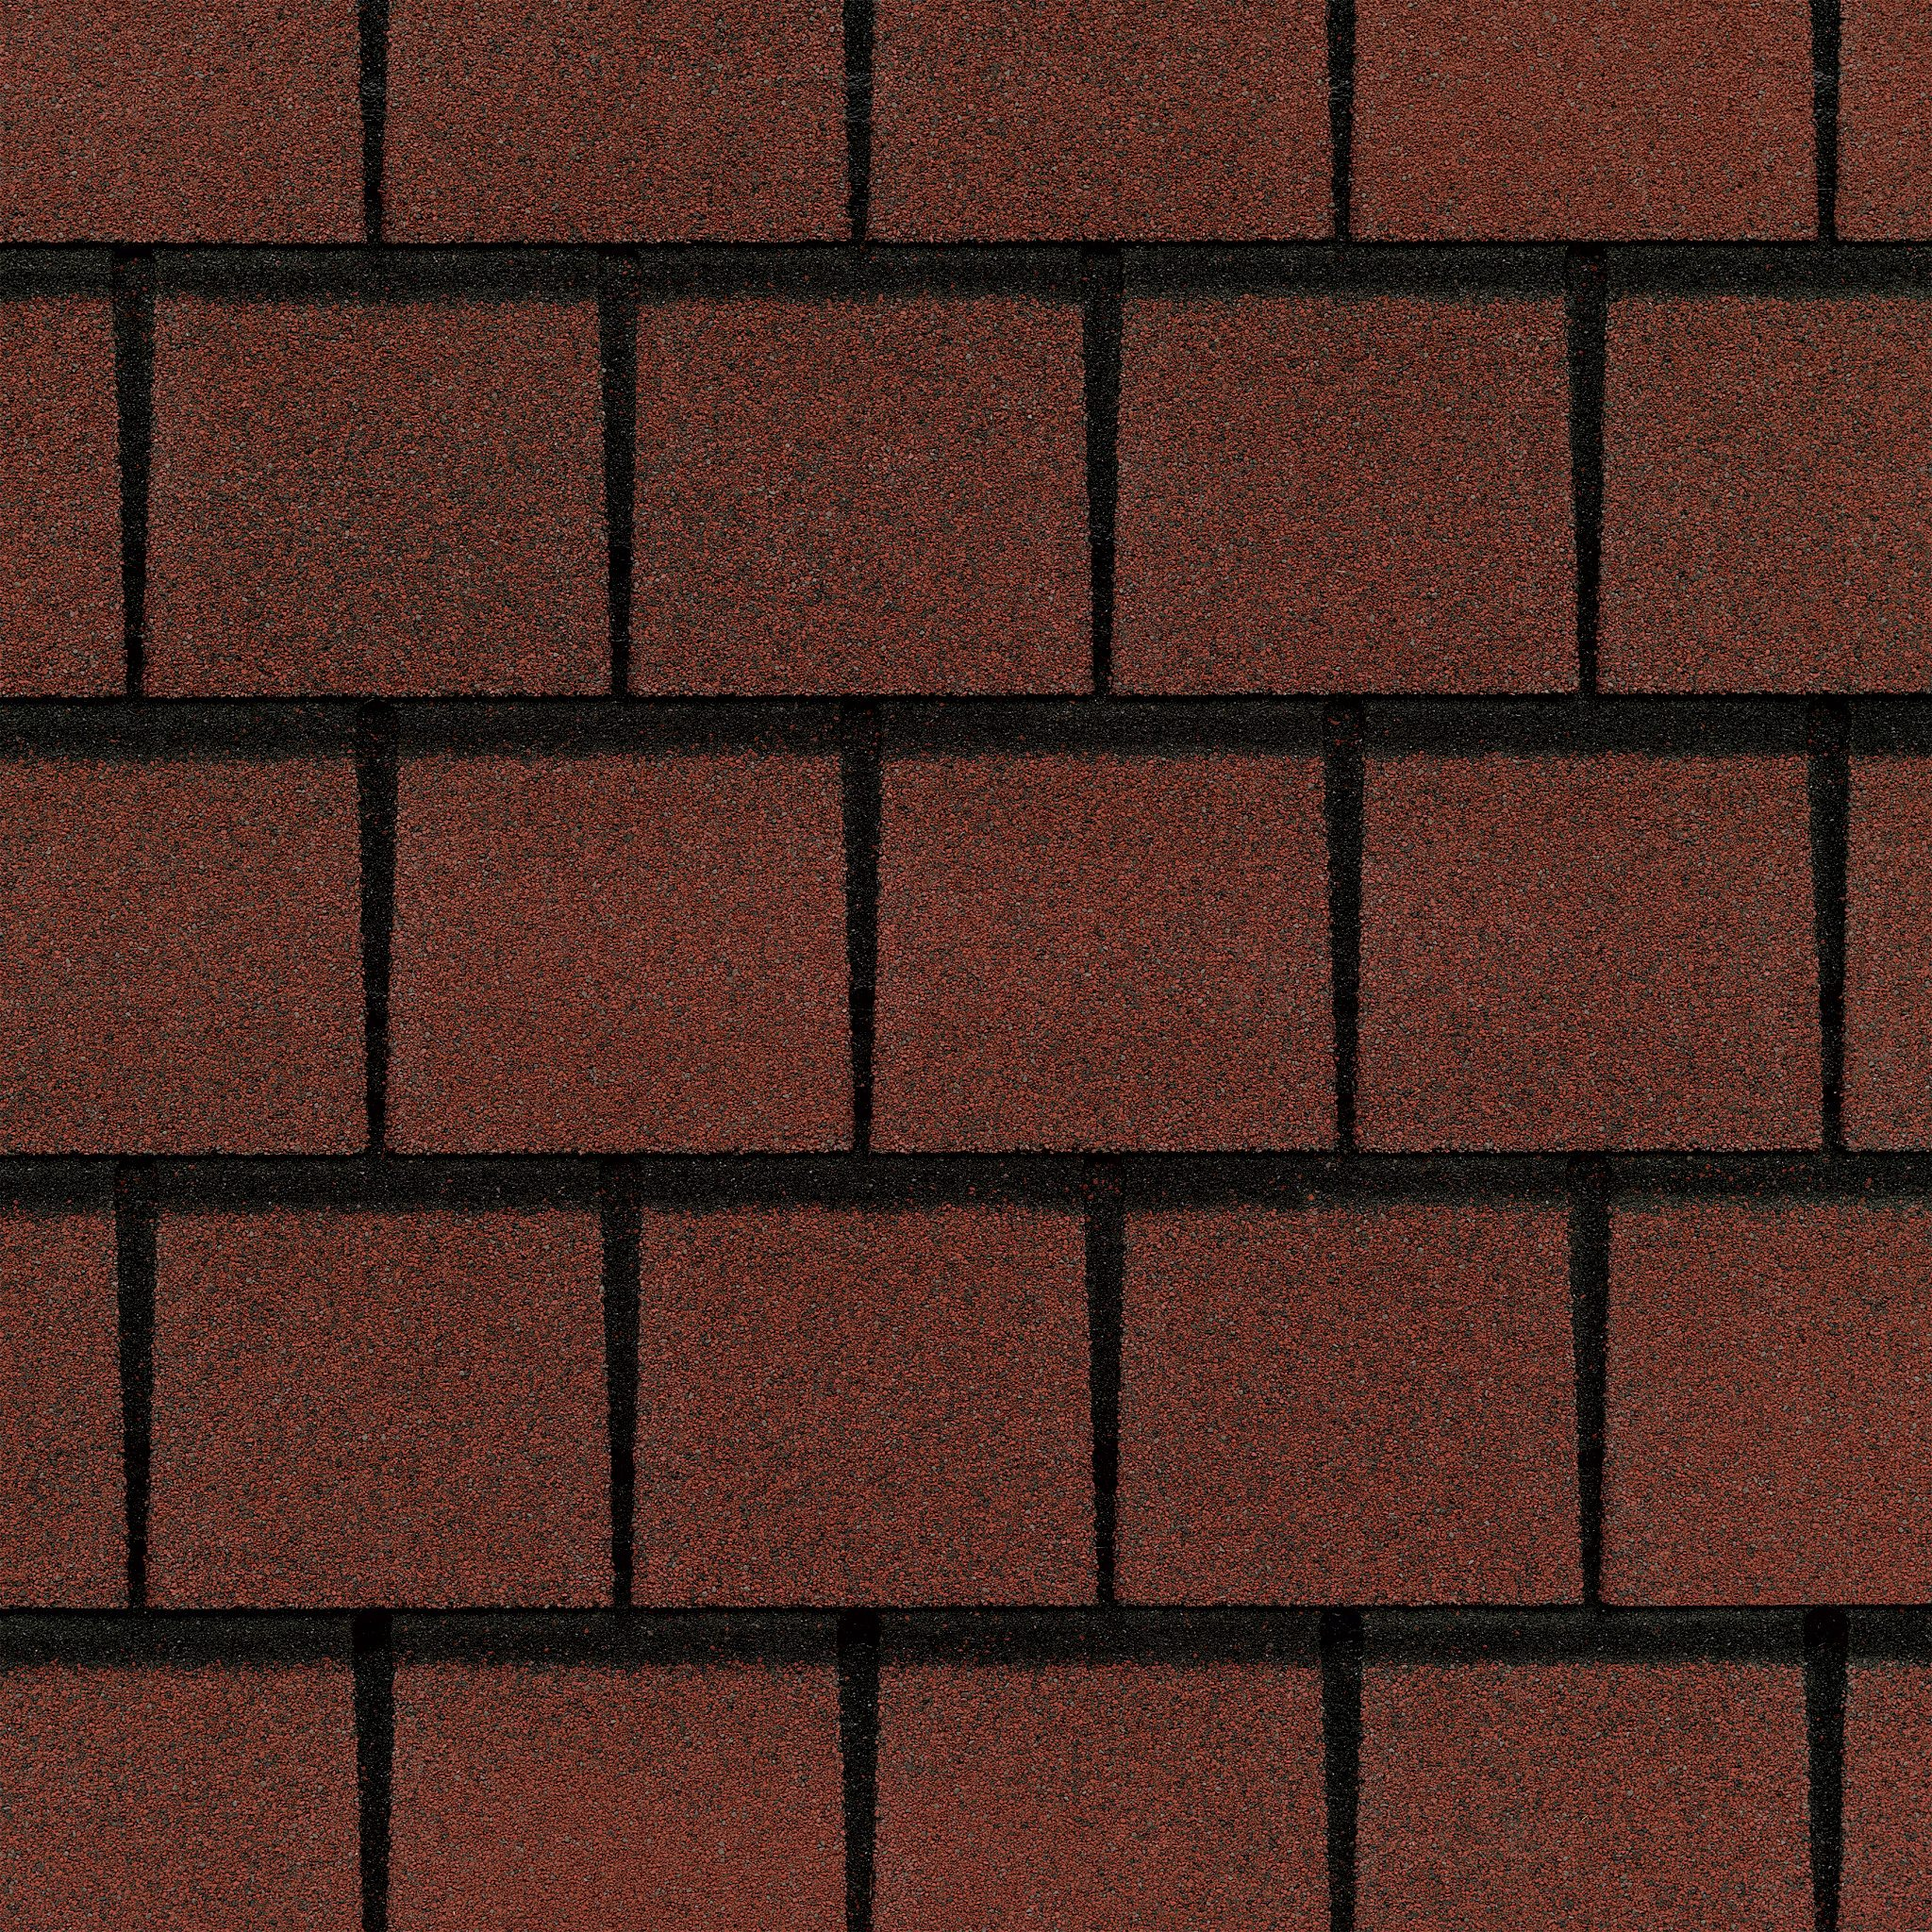 Close up photo of GAF's Slateline Victorian Red shingle swatch